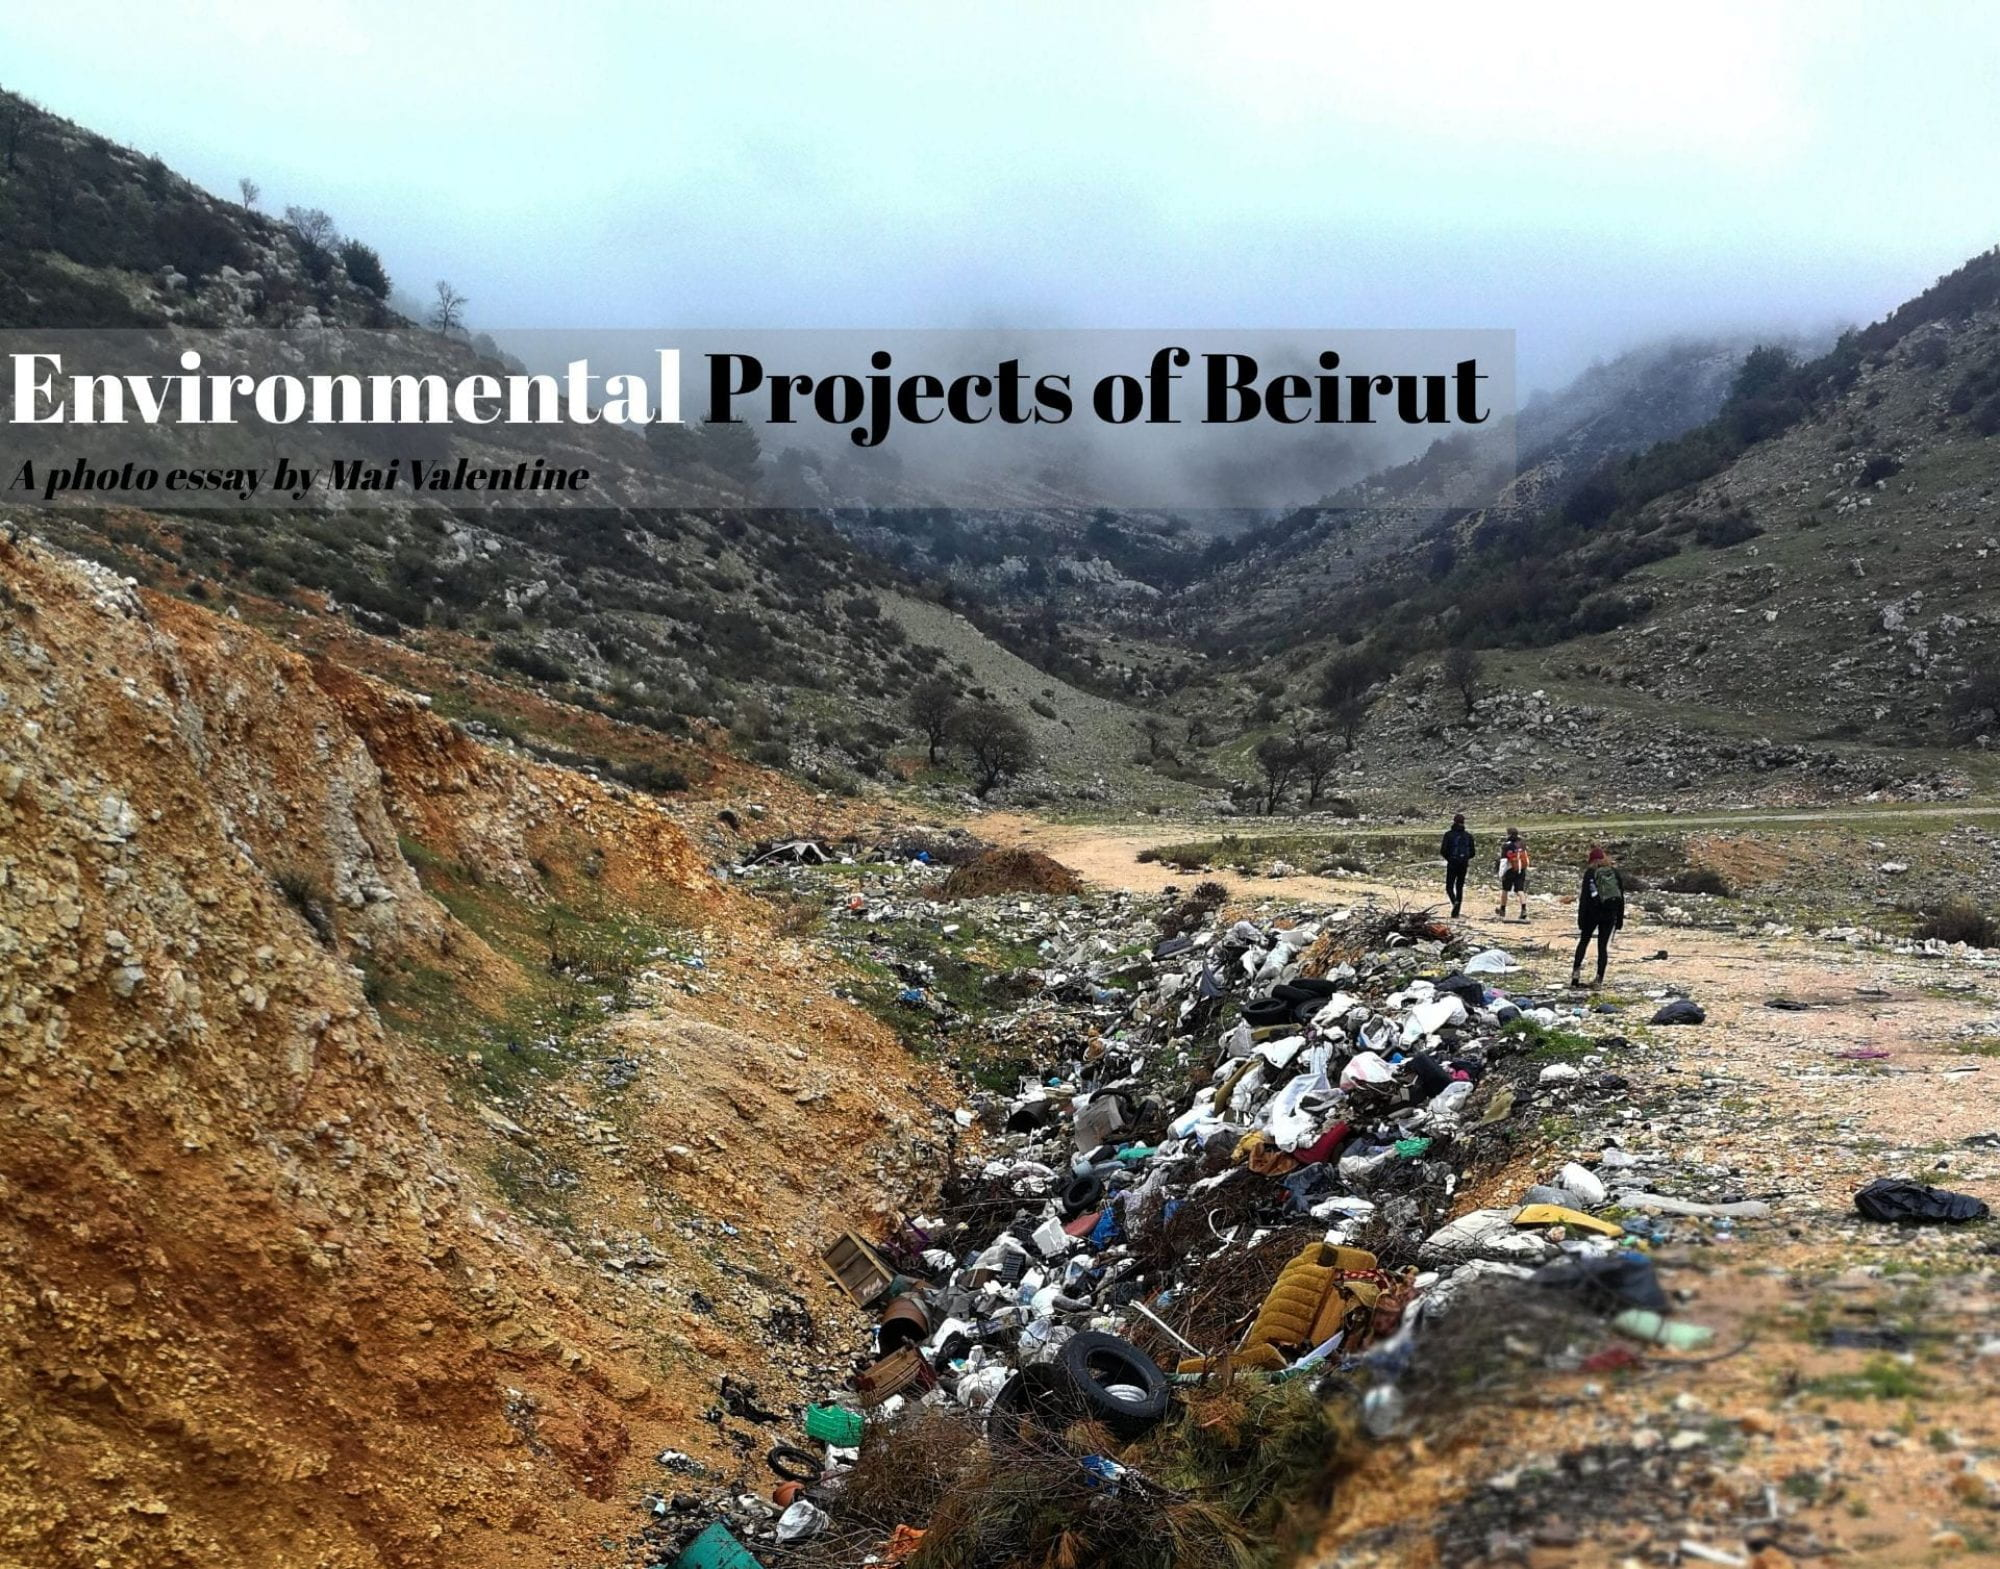 Environmental Projects of Beirut